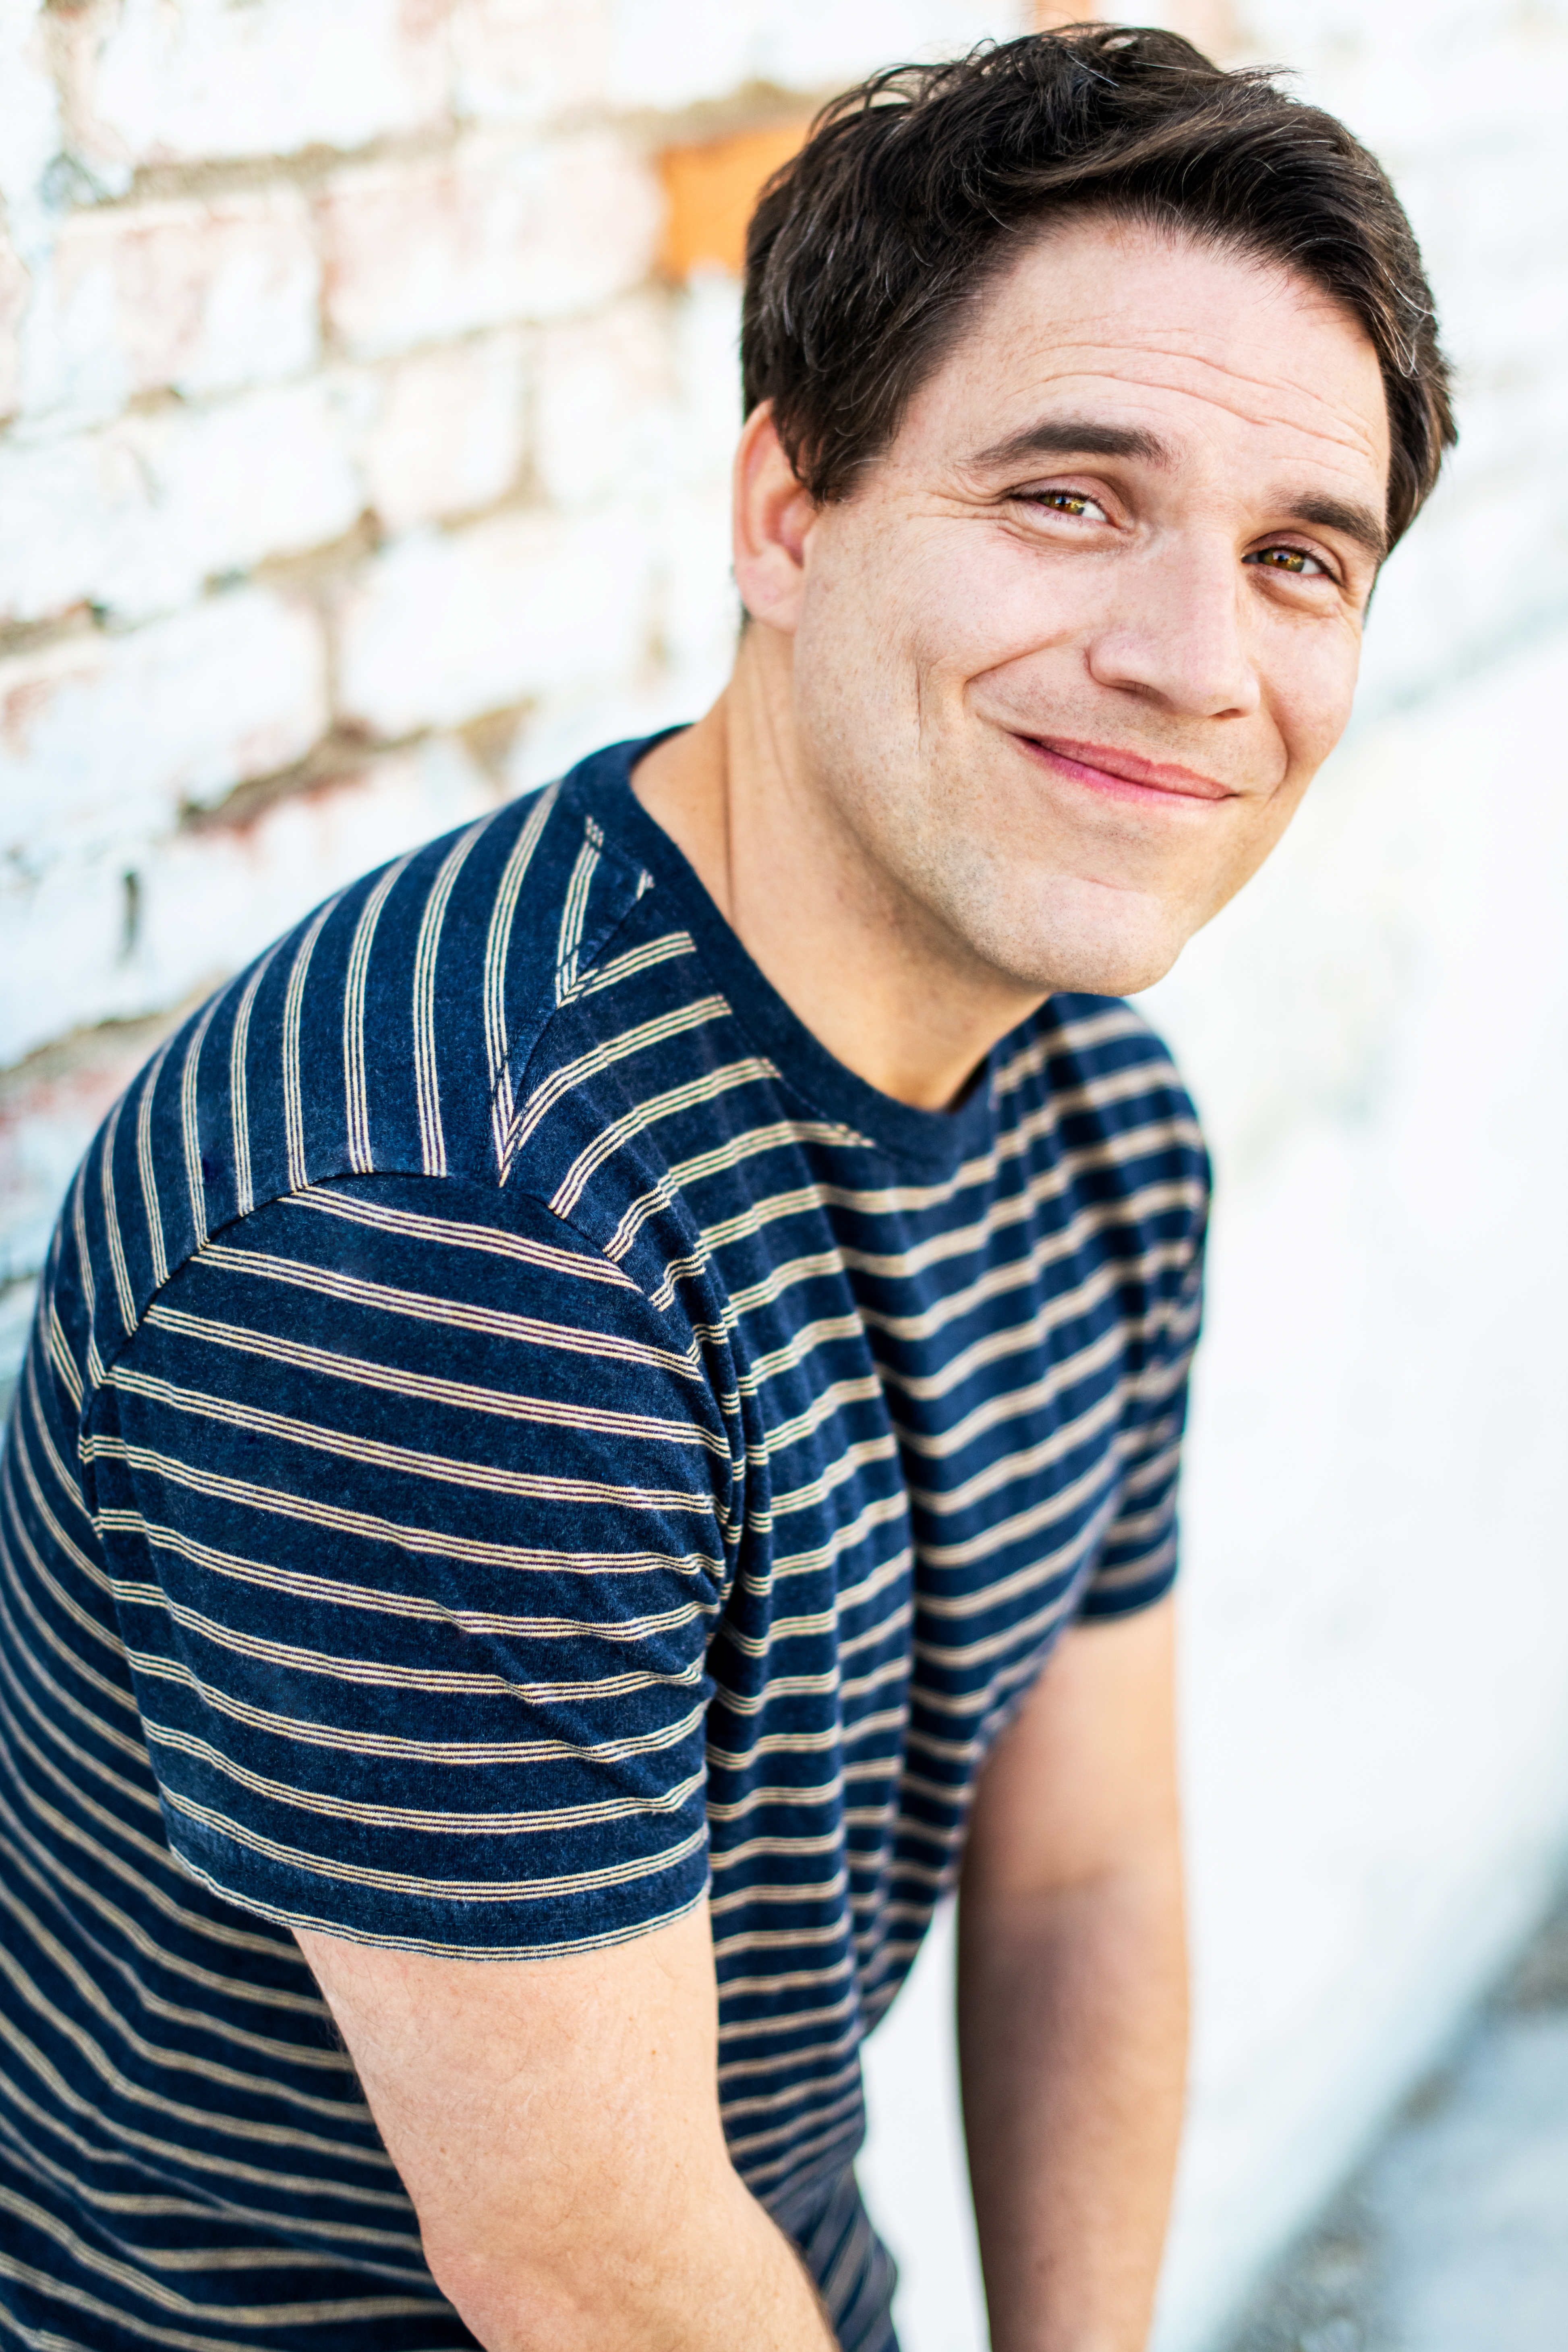 los angeles theatrical commercial headshot for male comedy actor striped t shirt brick wall